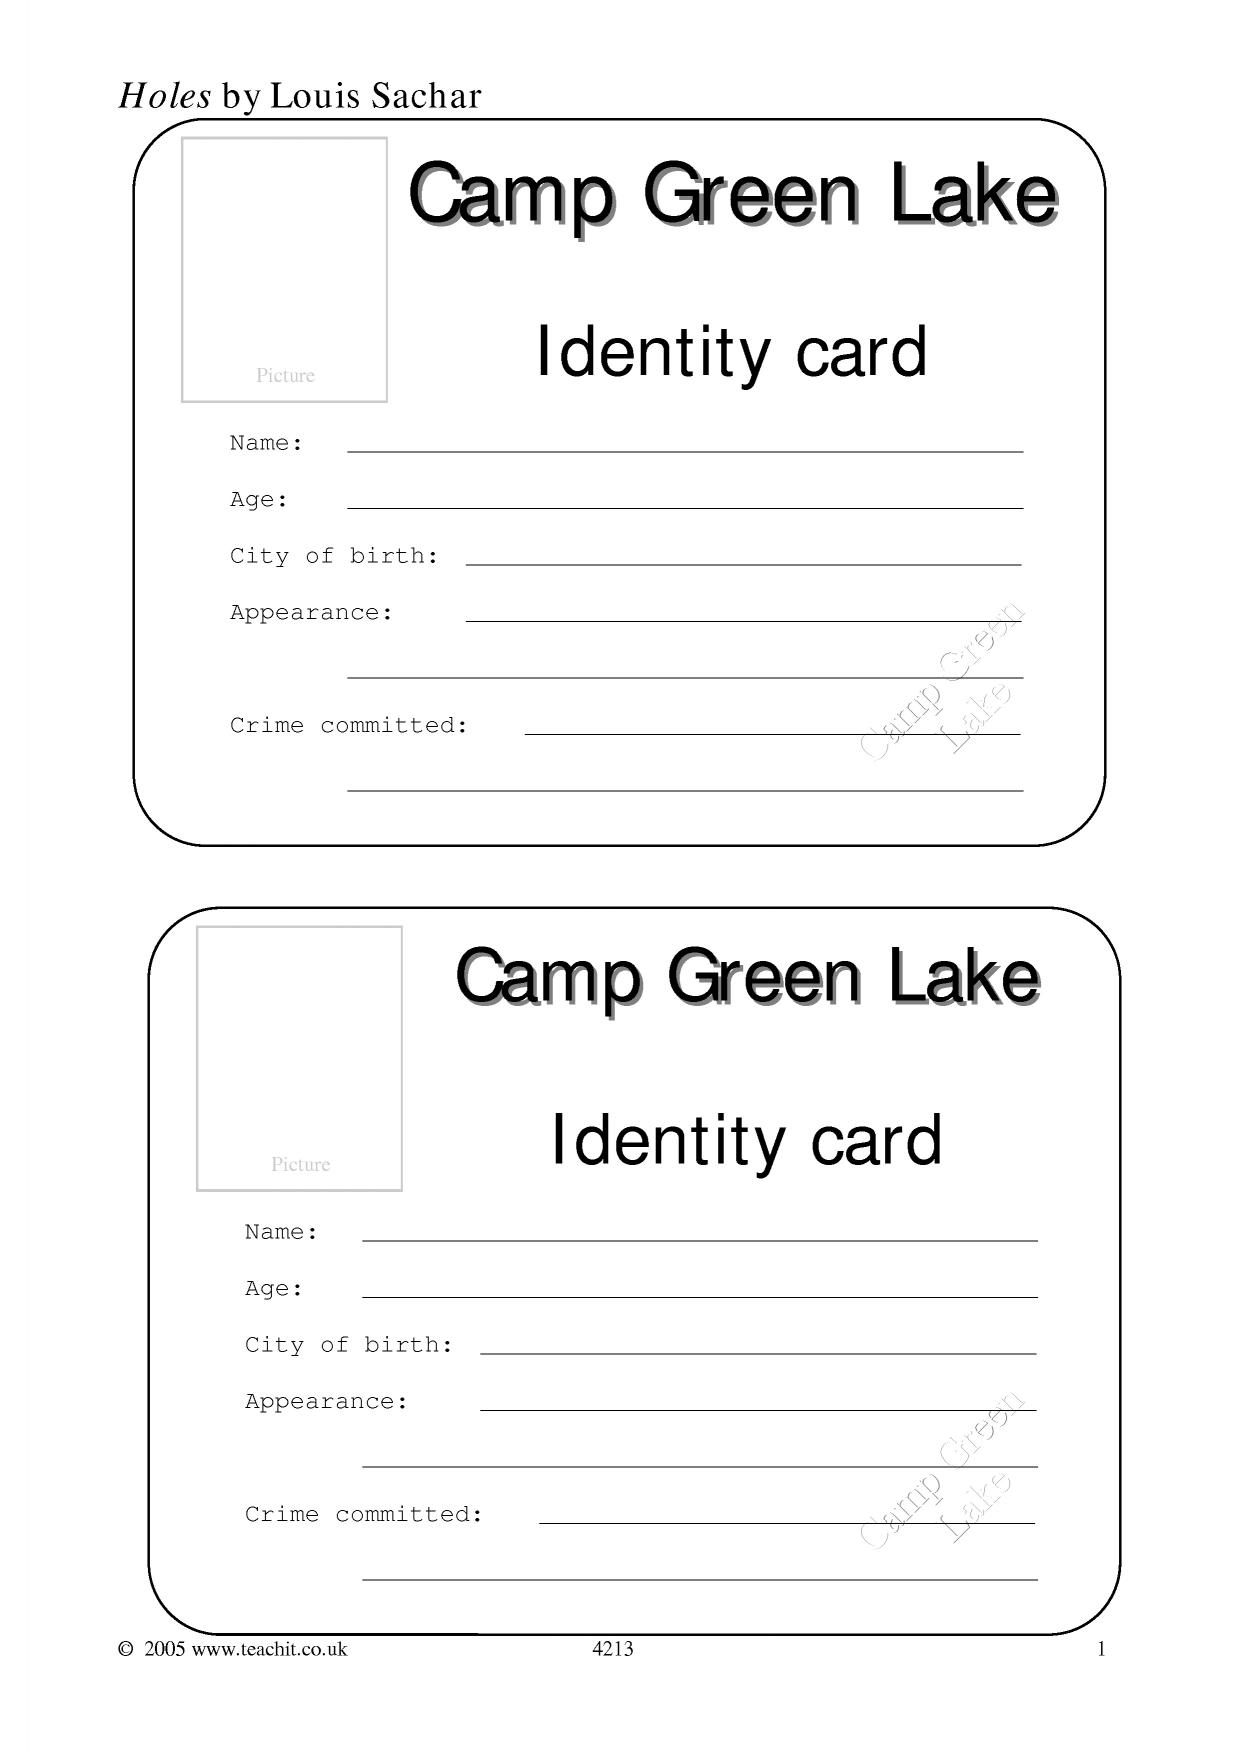 camp green lake id card holes by louis sachar home page